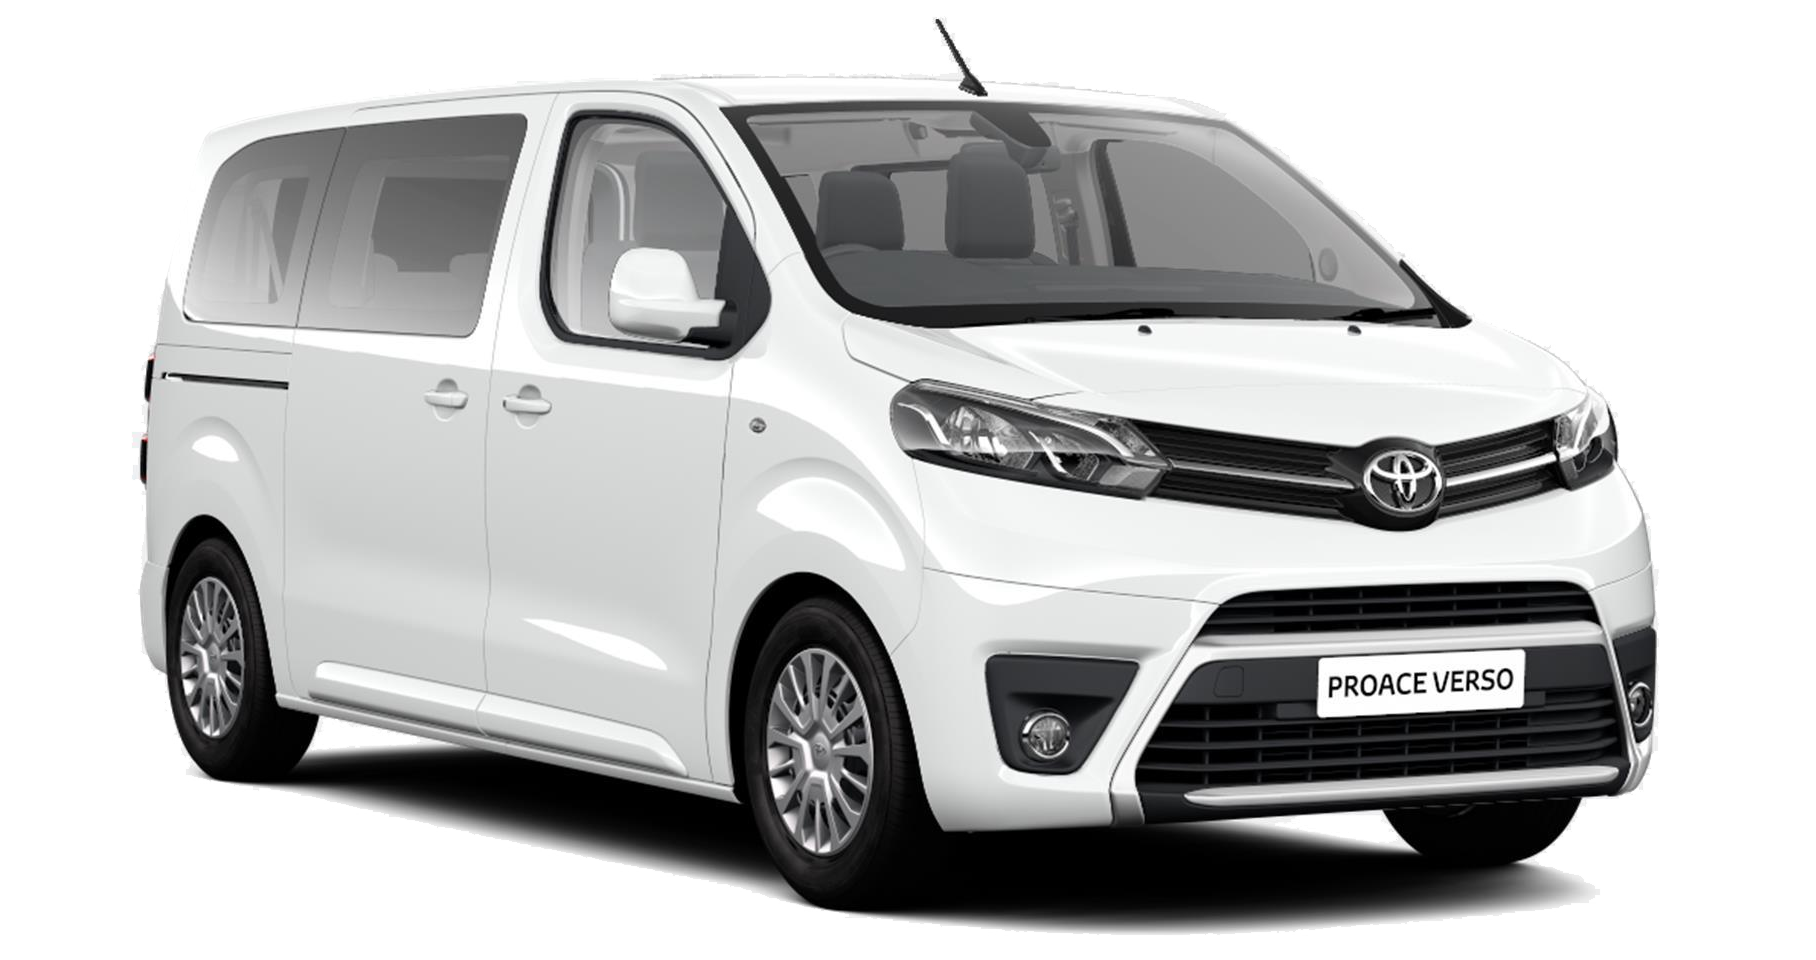 Toyota Proace Verso - Available in Vivid White